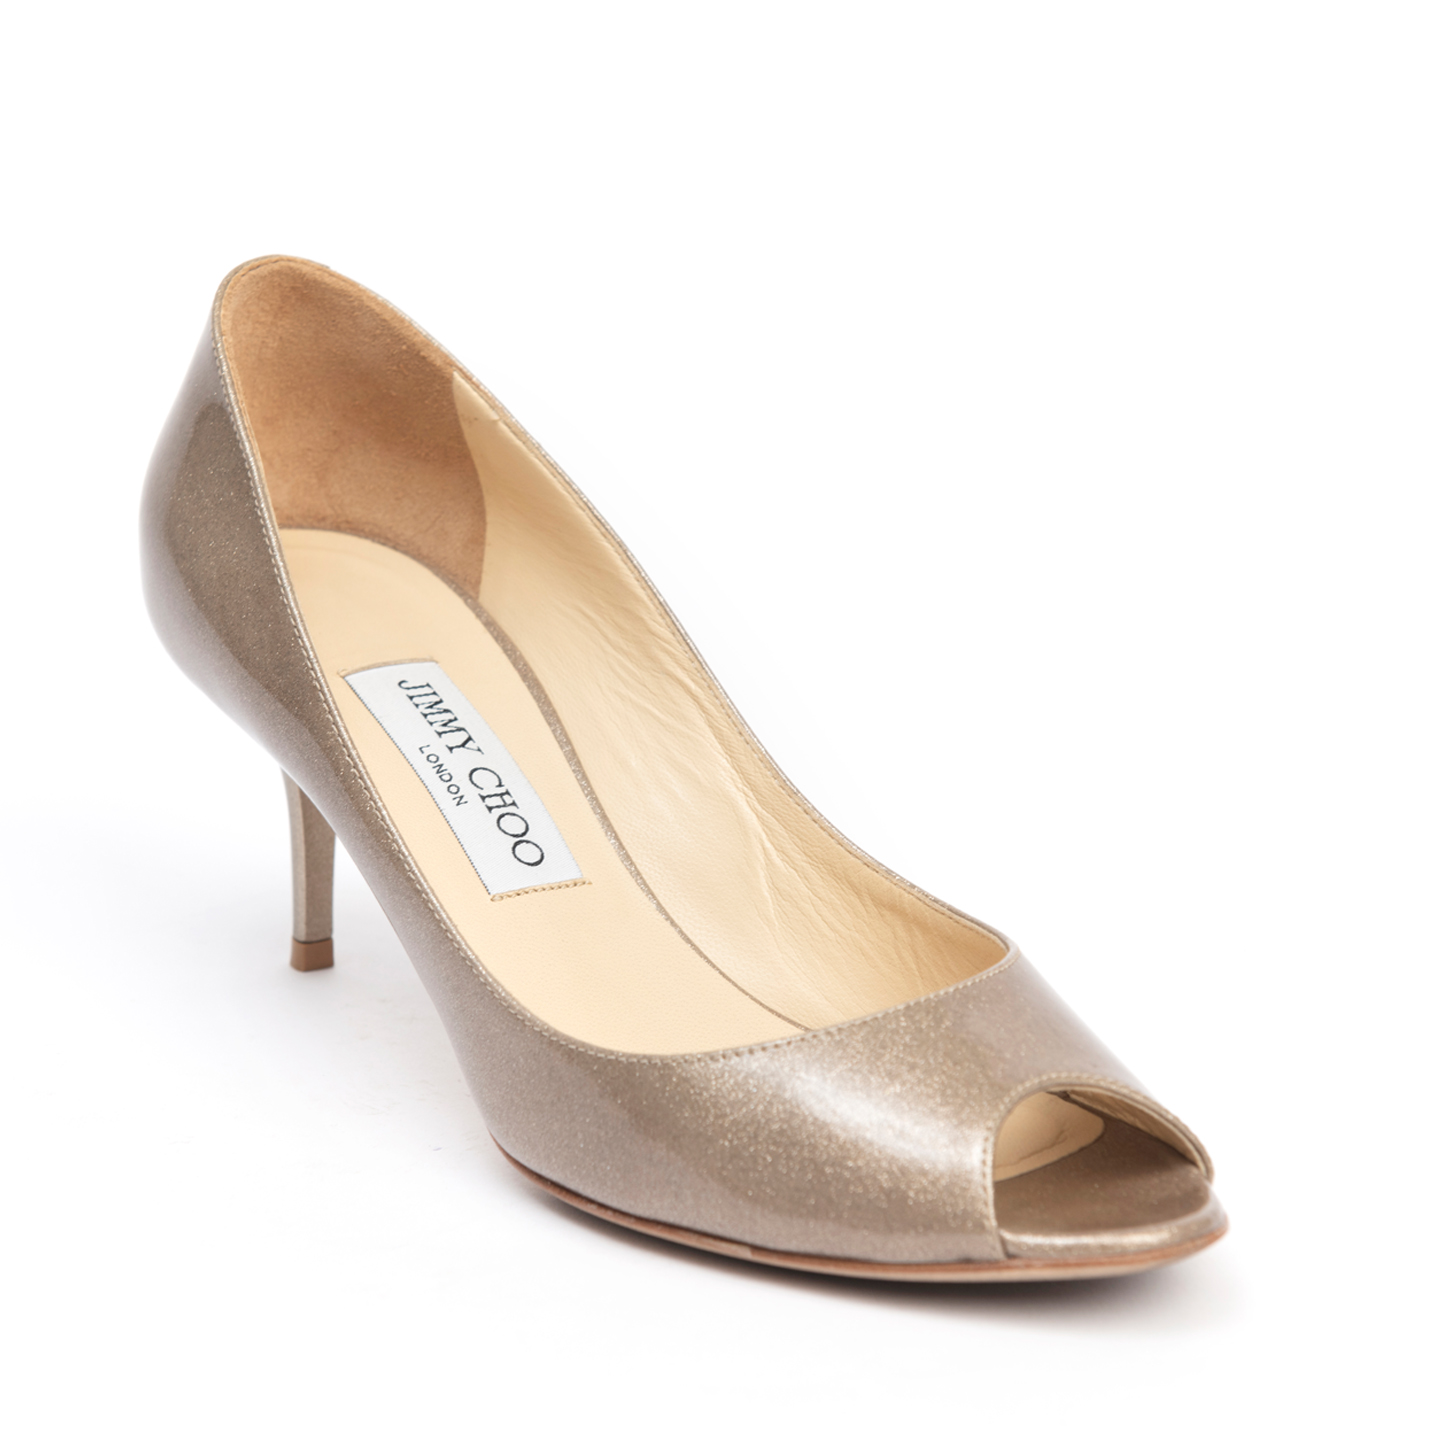 Jimmy Choo Dark Metallic Gold Patent Evelyn Peep-toe Pumps